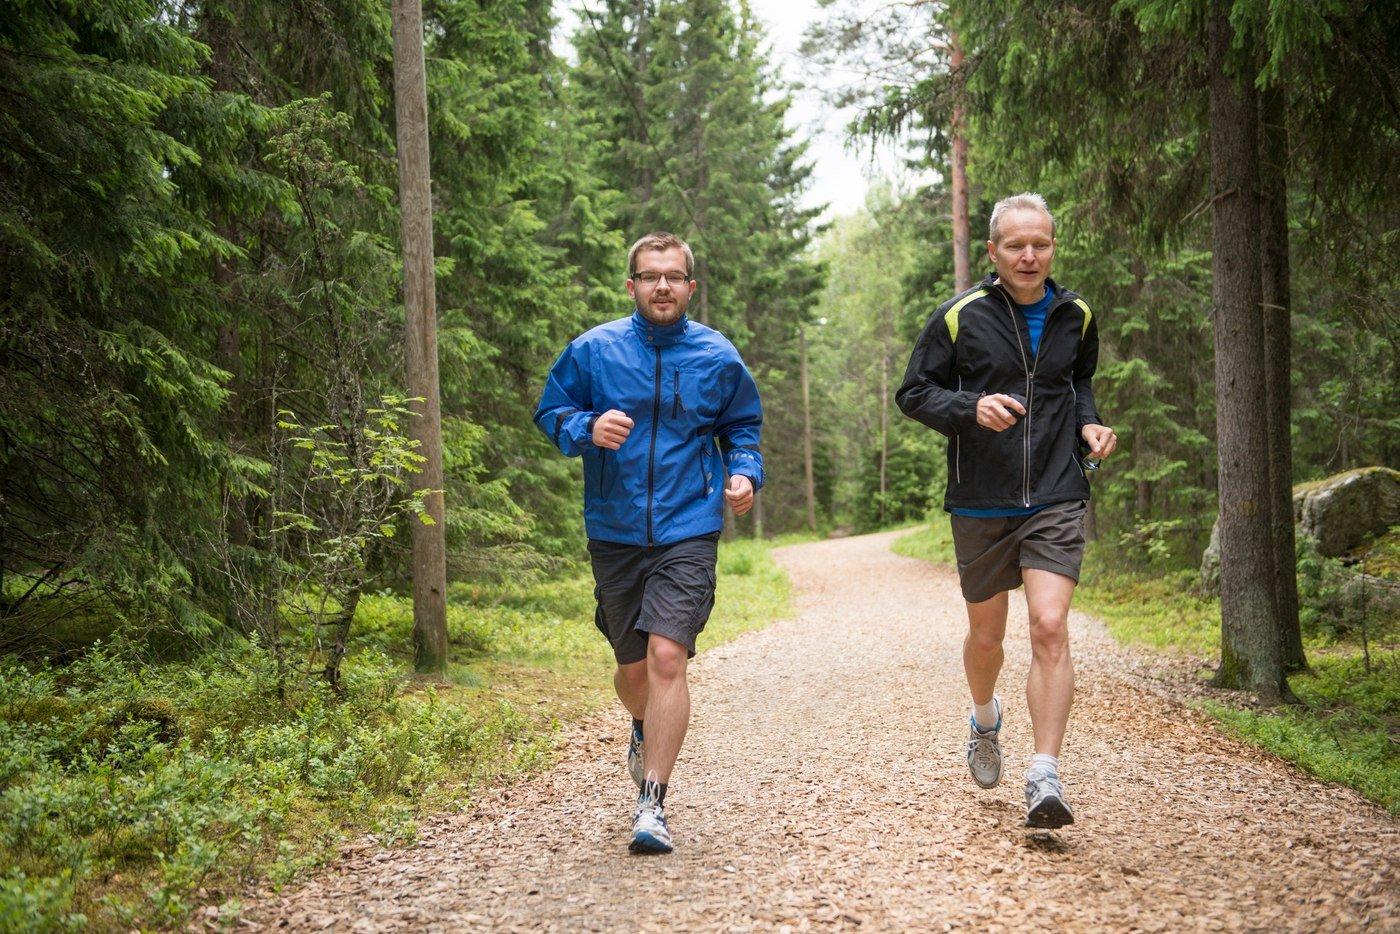 7 Habits to Stay Fit After 50 for Men